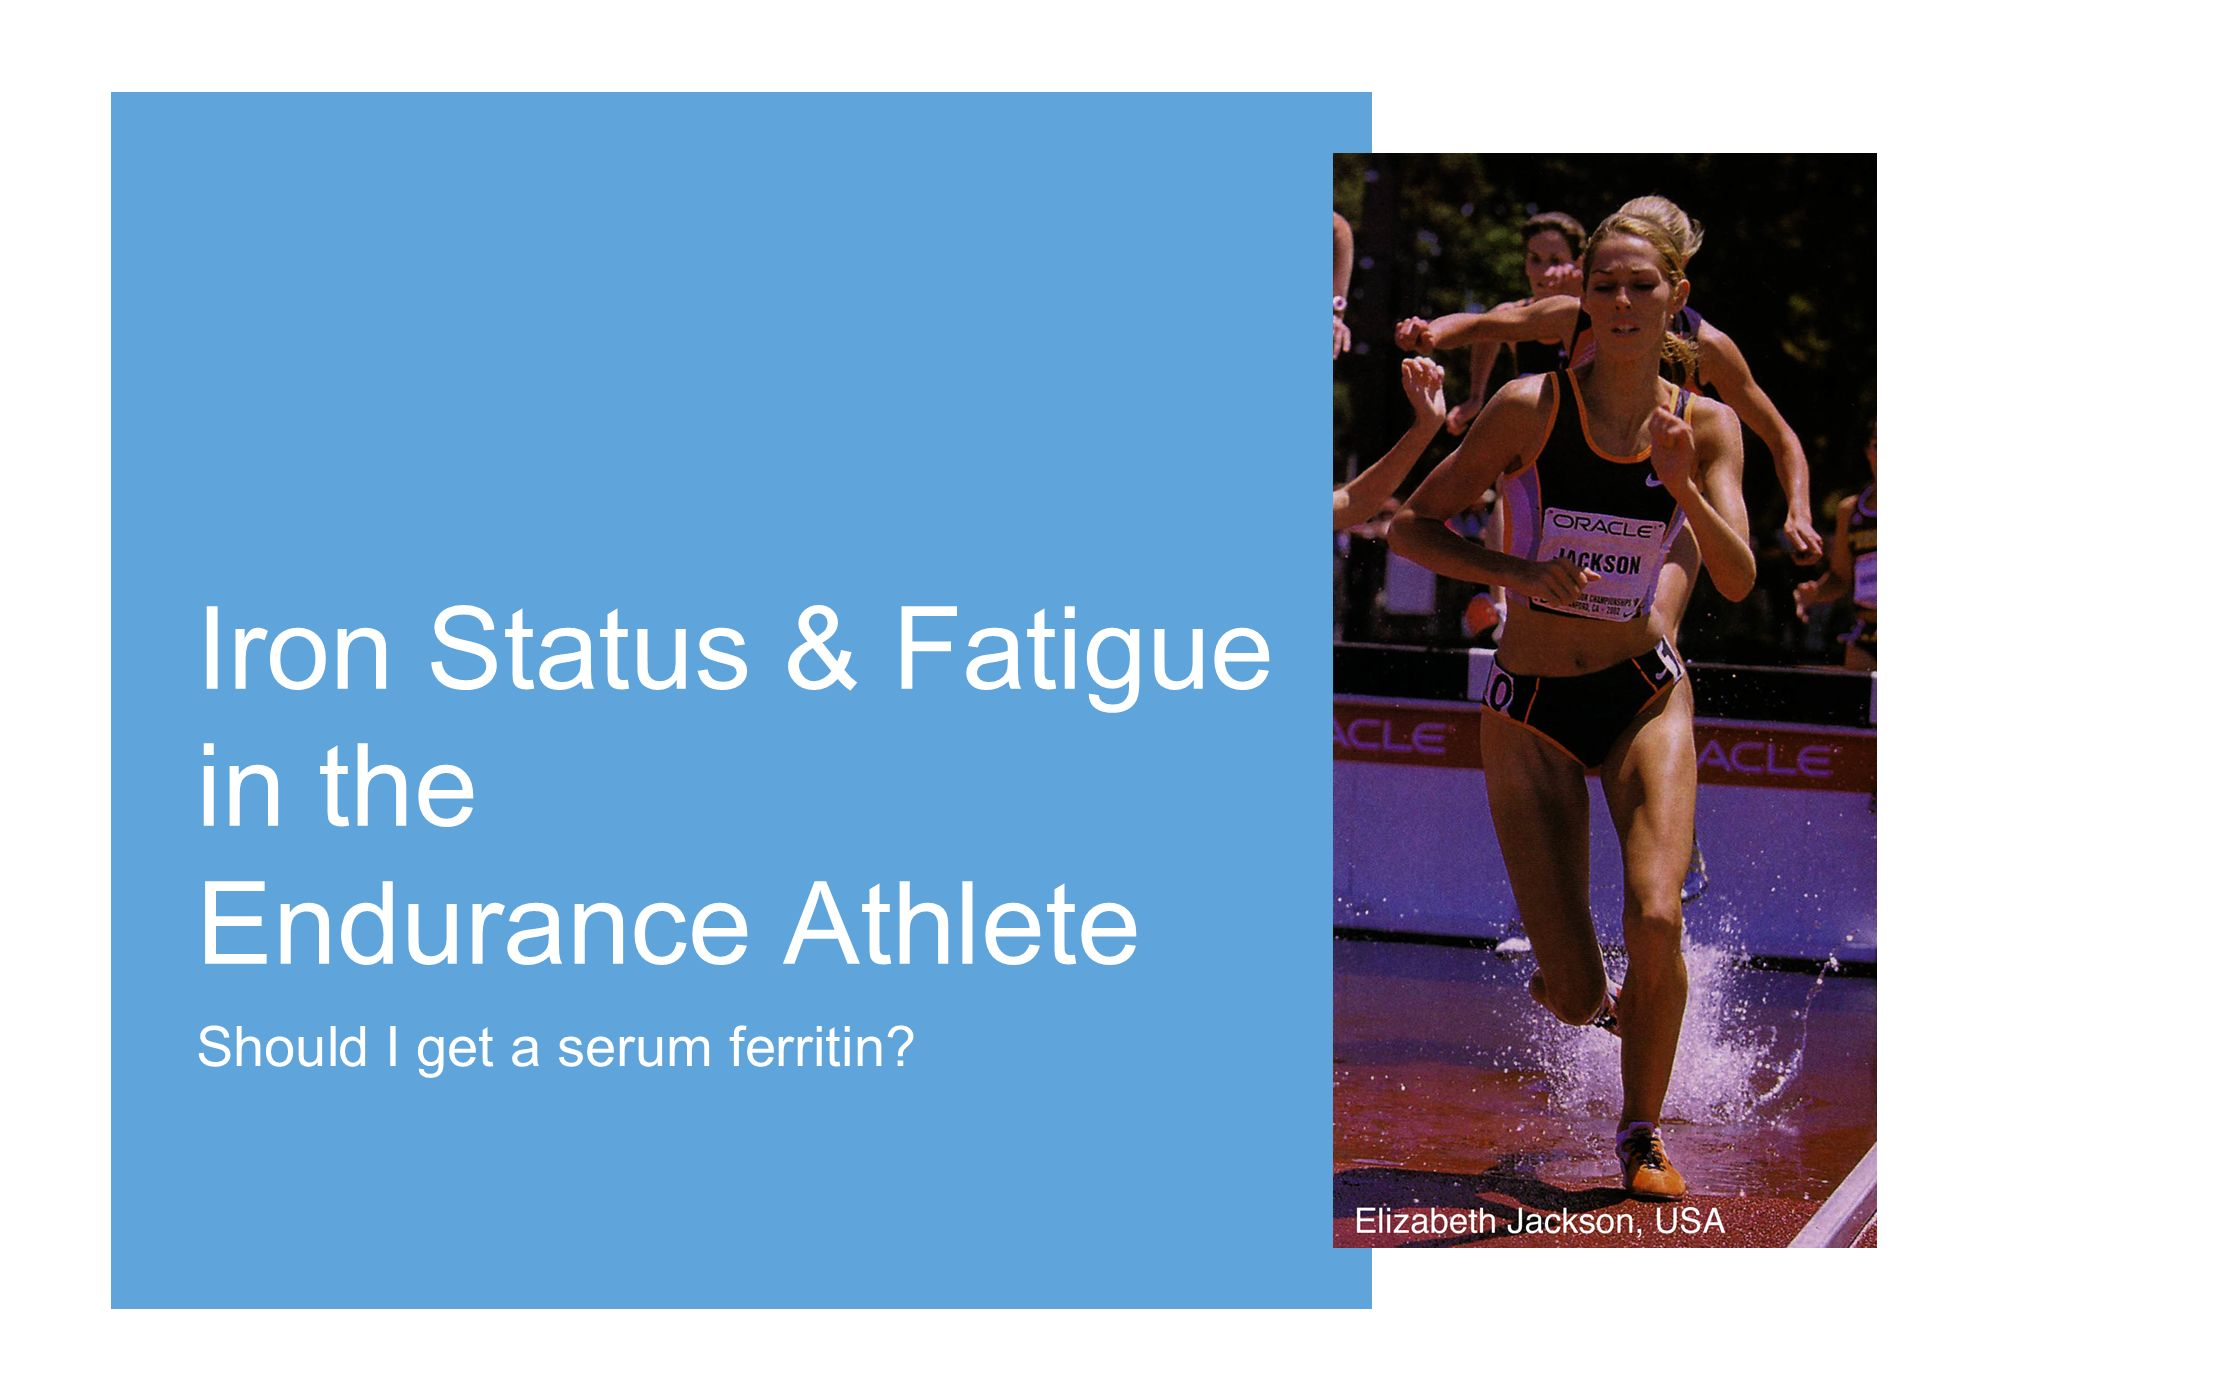 Iron Status & Fatigue in the Endurance Athlete Should I get a serum ferritin?